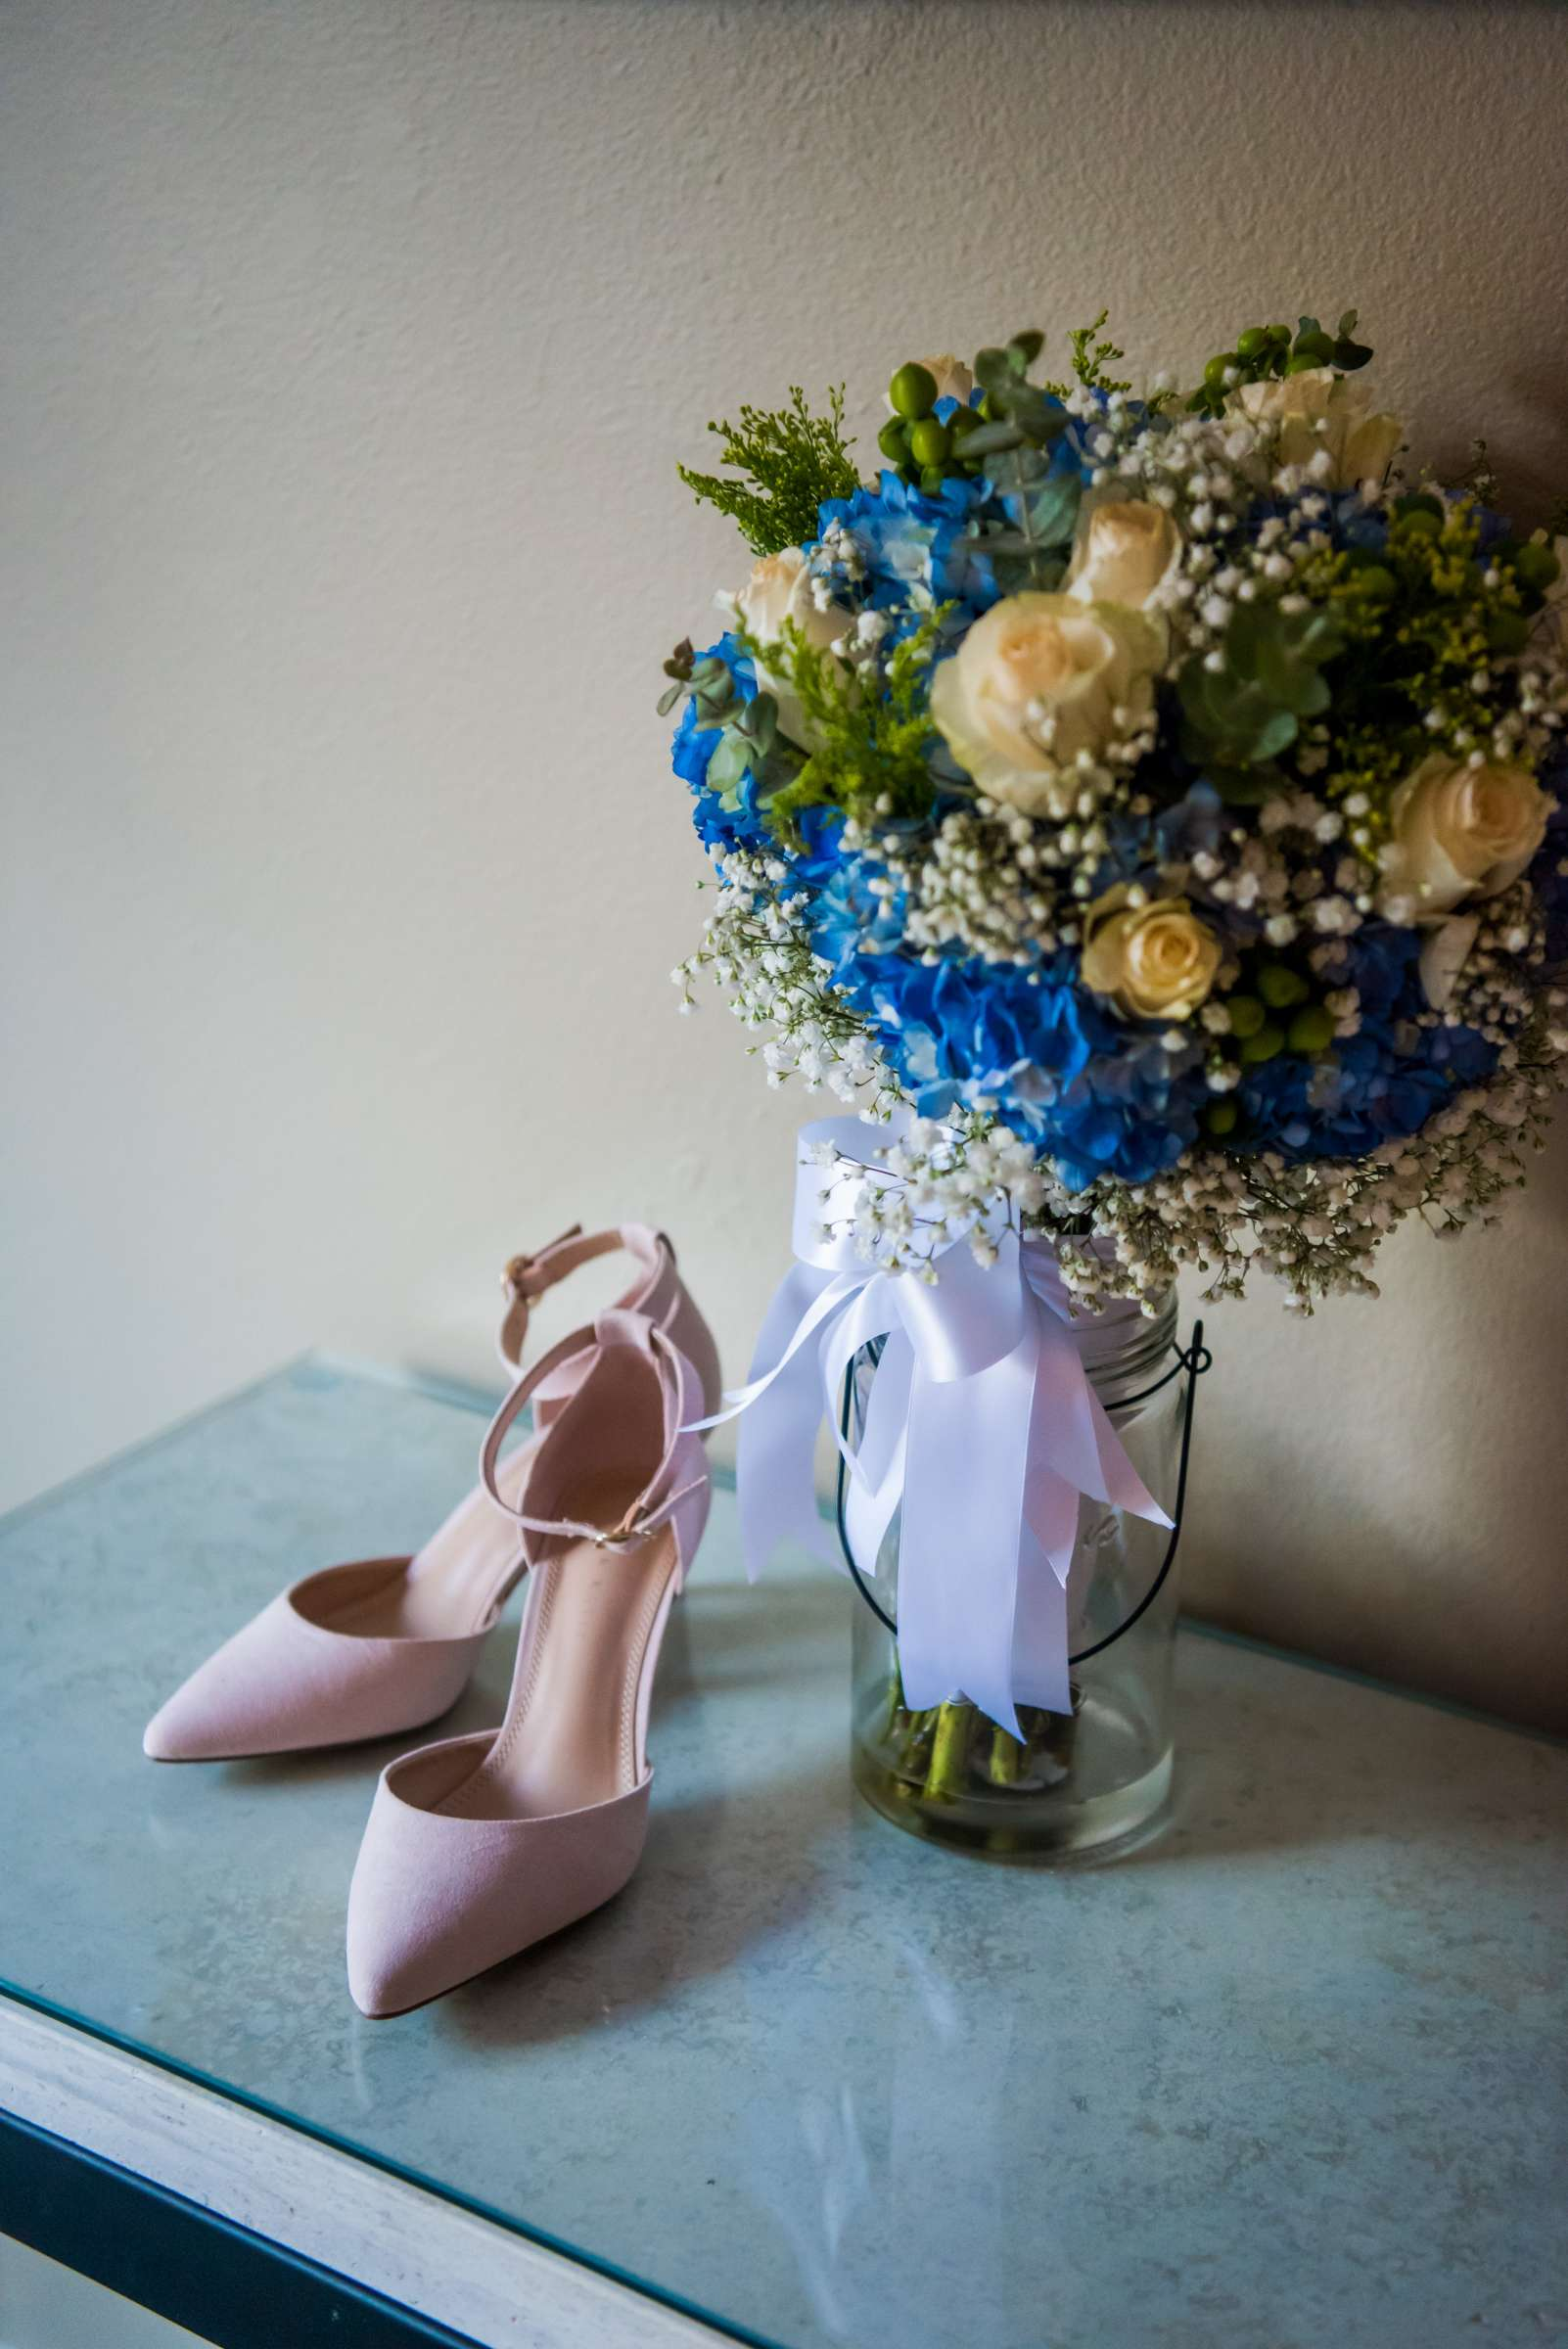 The Immaculata Wedding, Arianna and Jonah Wedding Photo #48 by True Photography